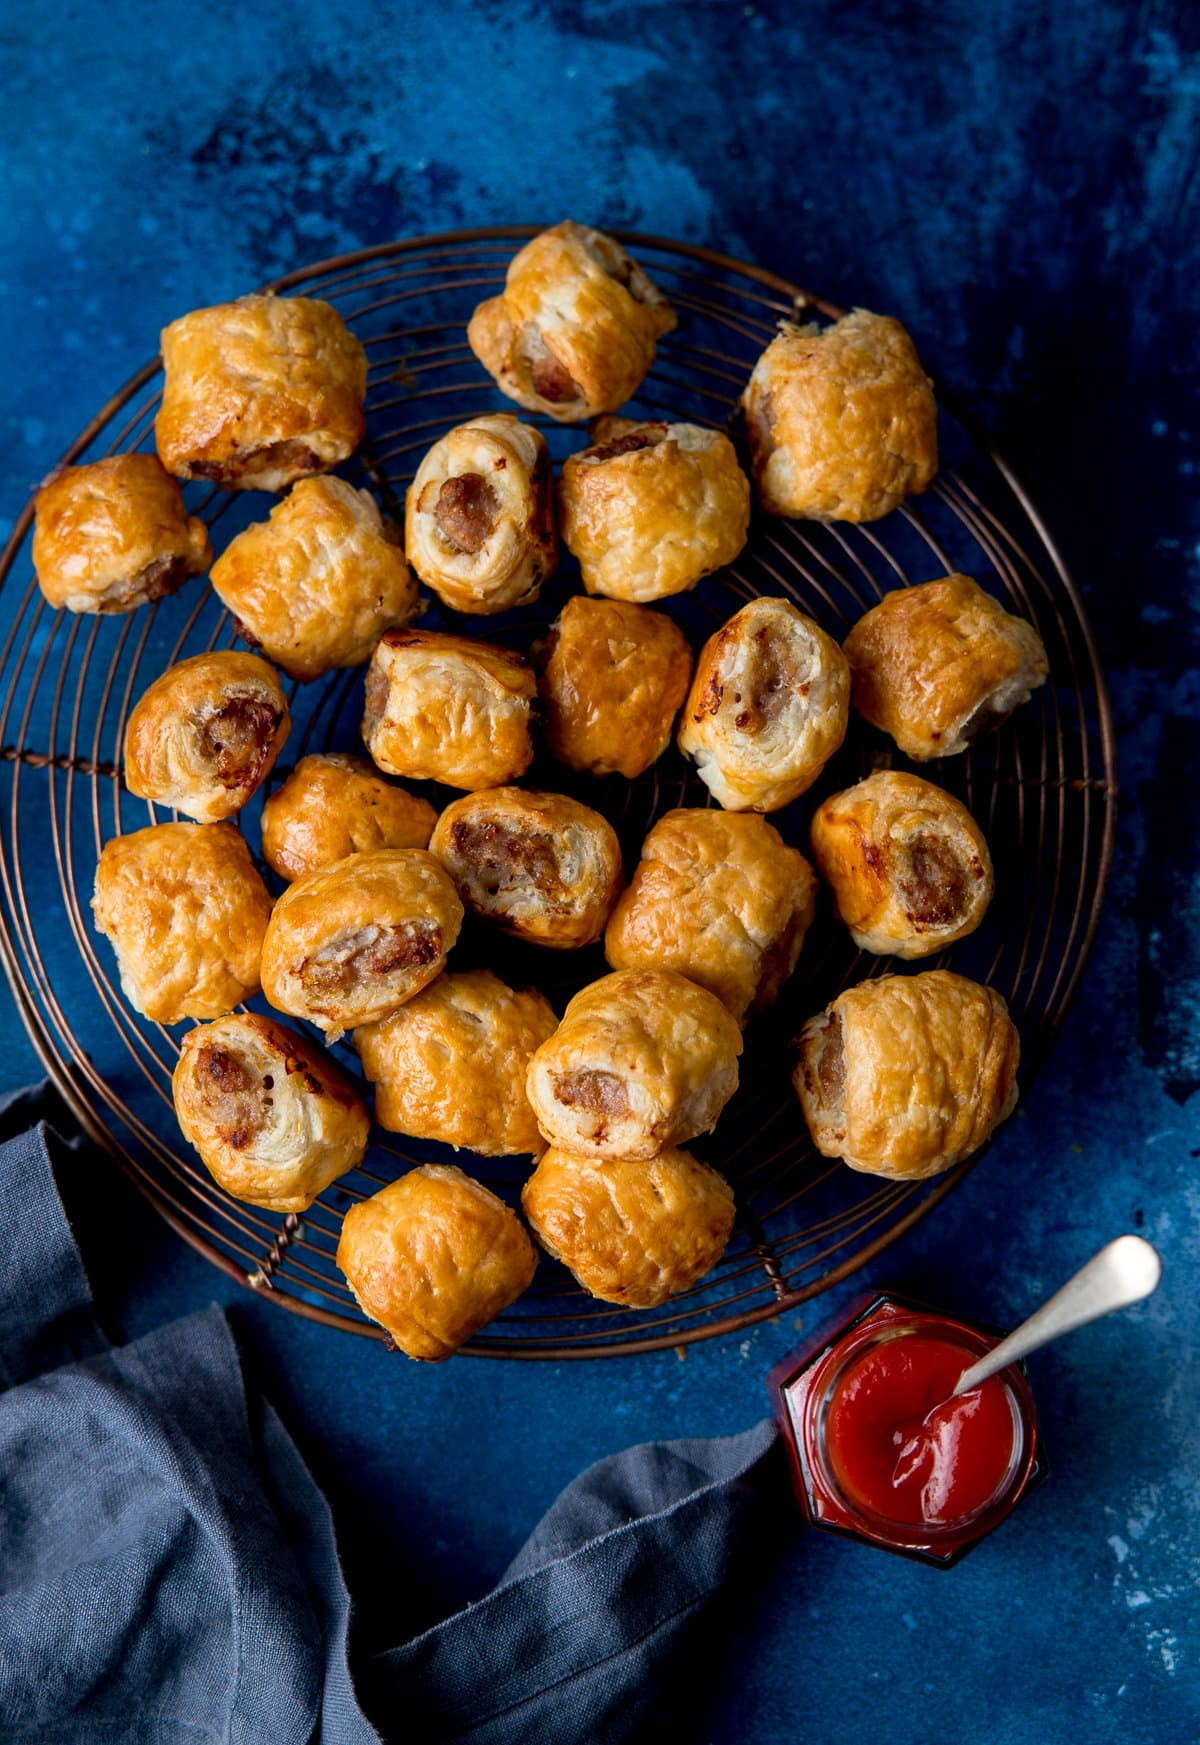 sausage rolls on a cooling rack on a dark blue background with a pot of ketchup